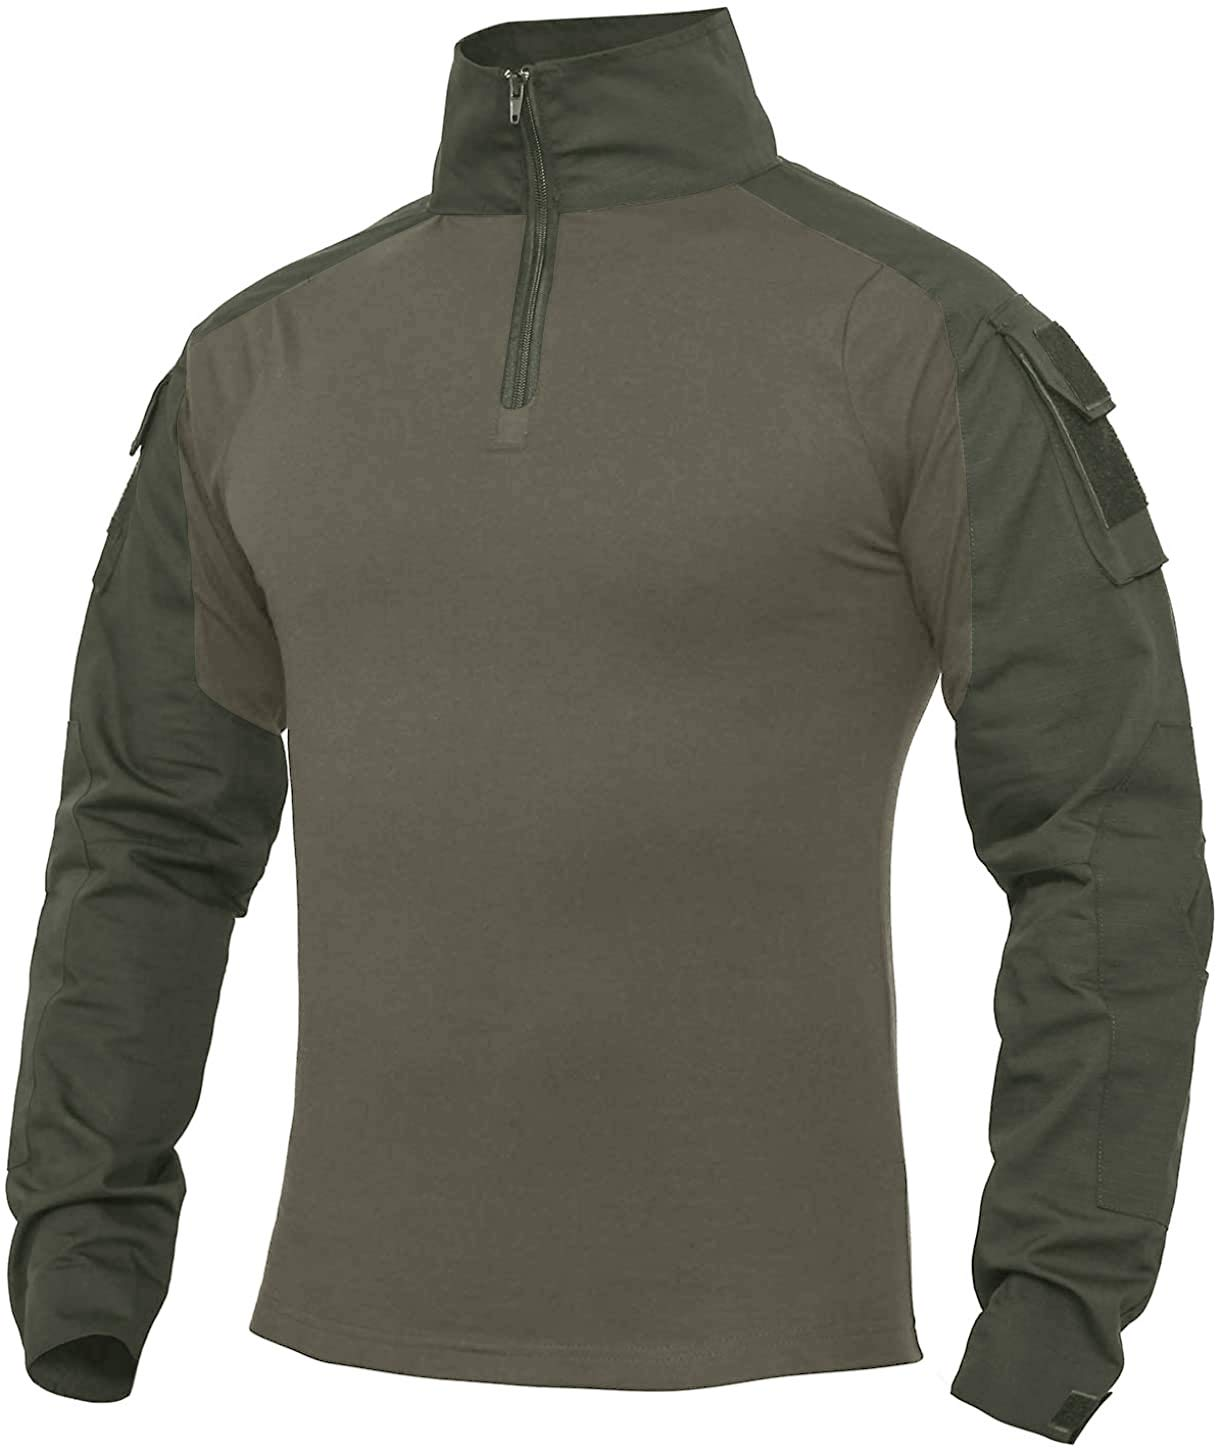 XKTTAC Tactical-Combat-Airsoft-Military-Shirt